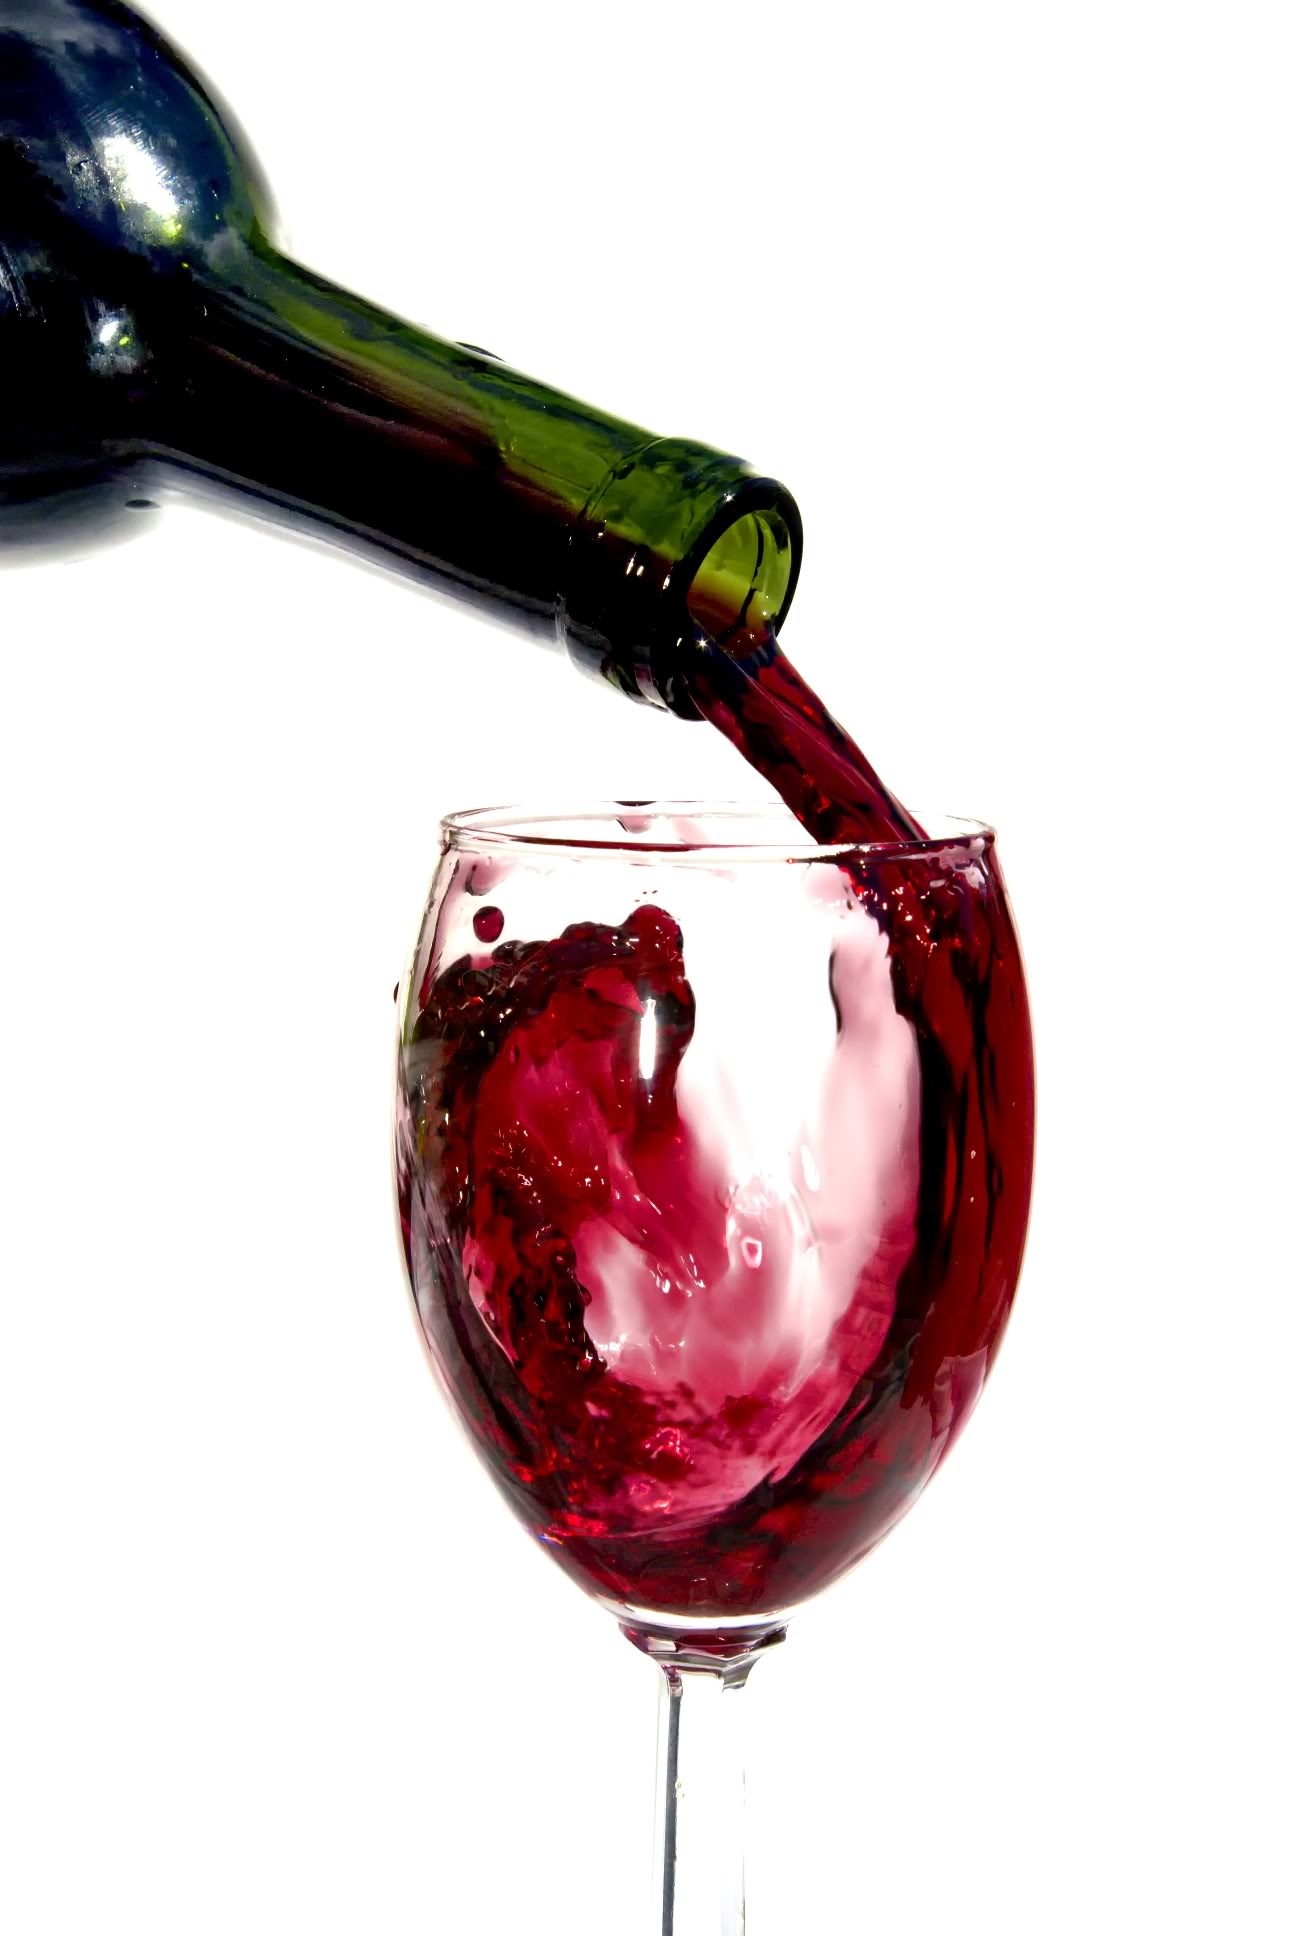 Resolutions for a wine lover